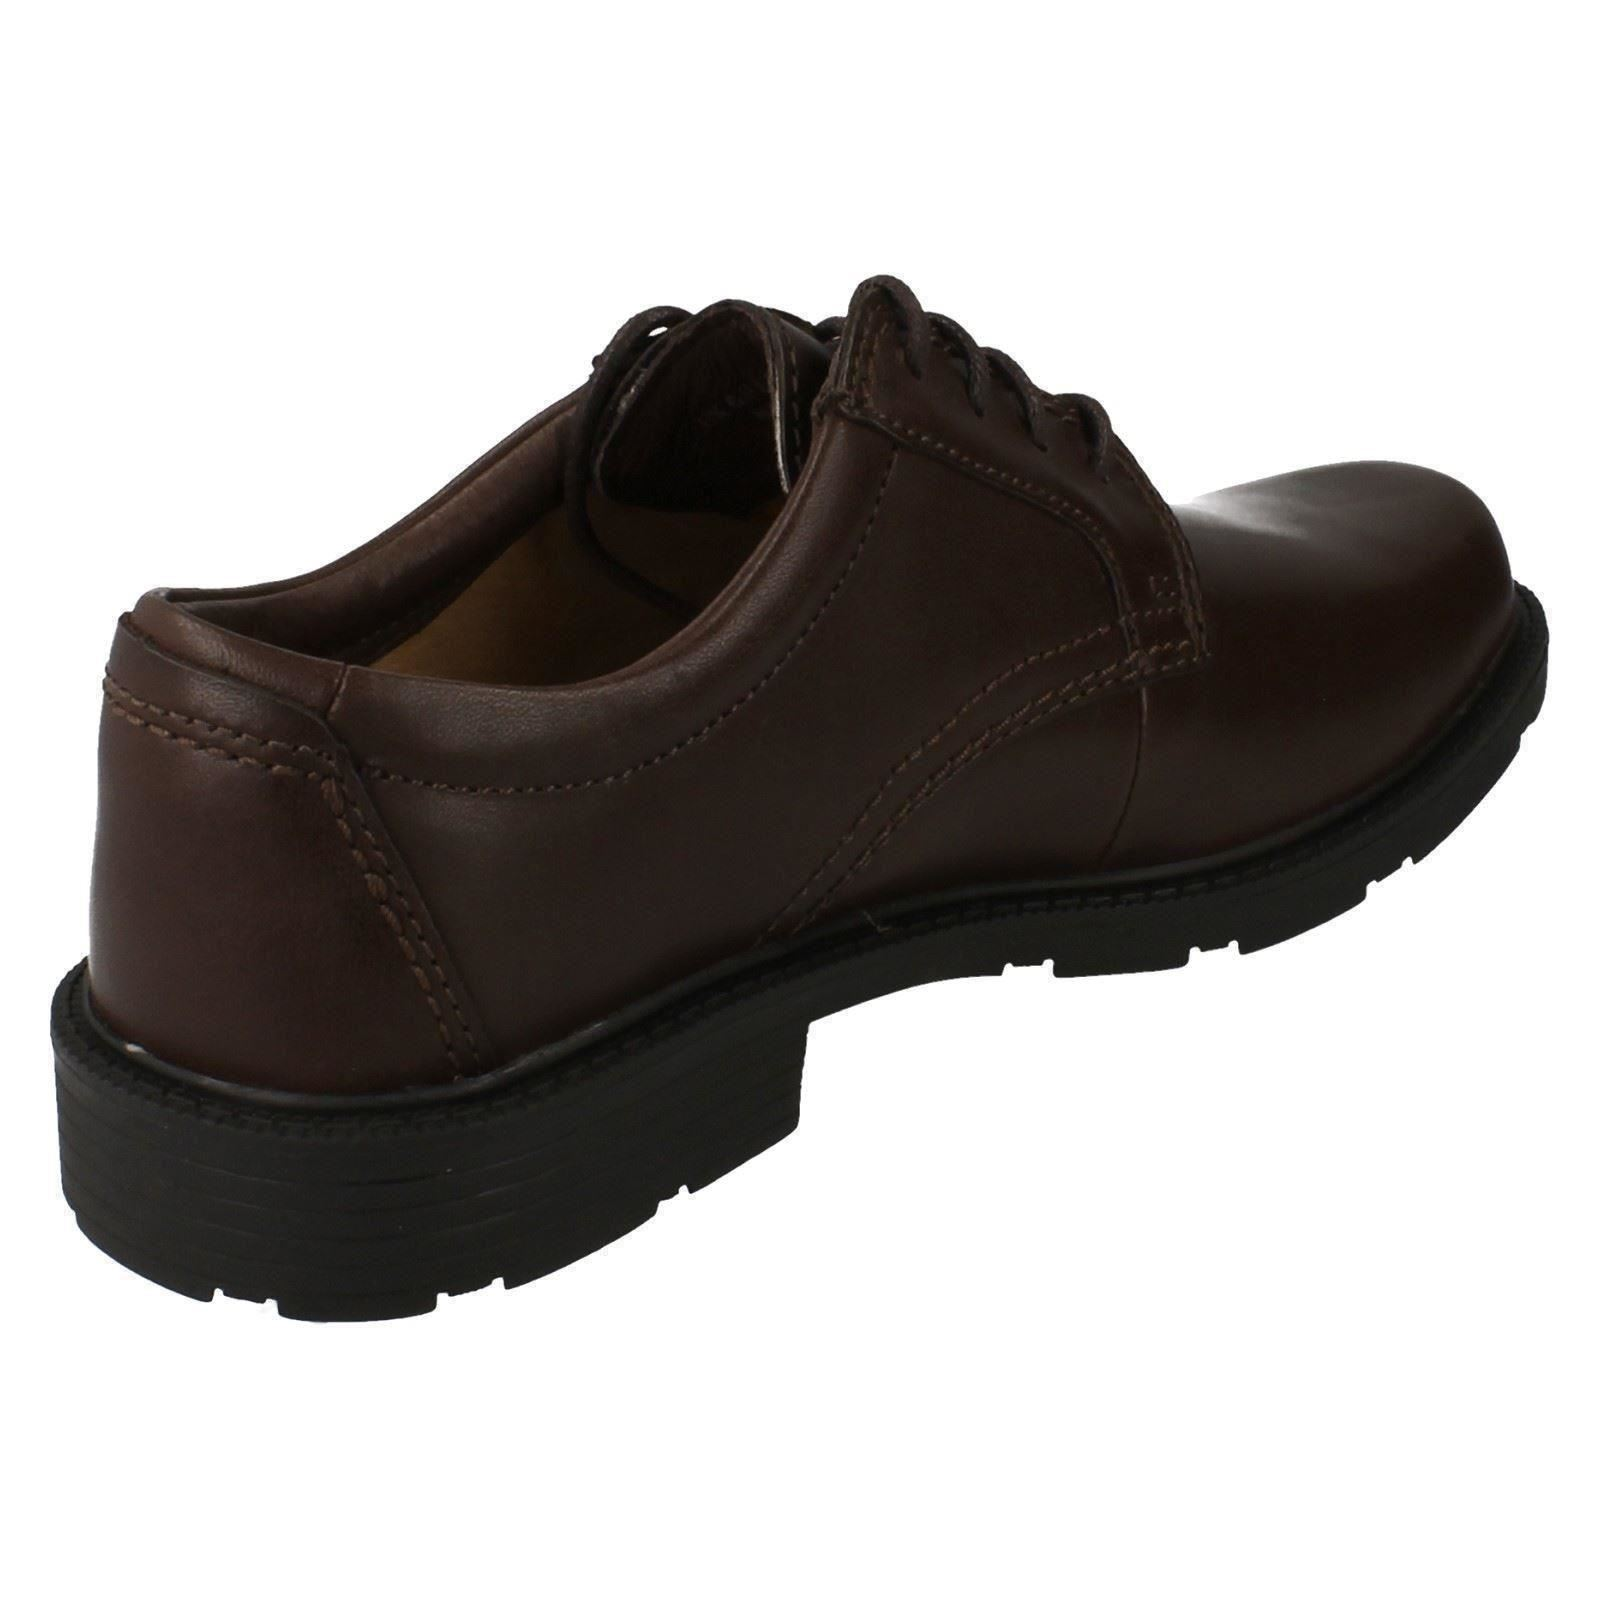 Clarks Black Lair Shoes